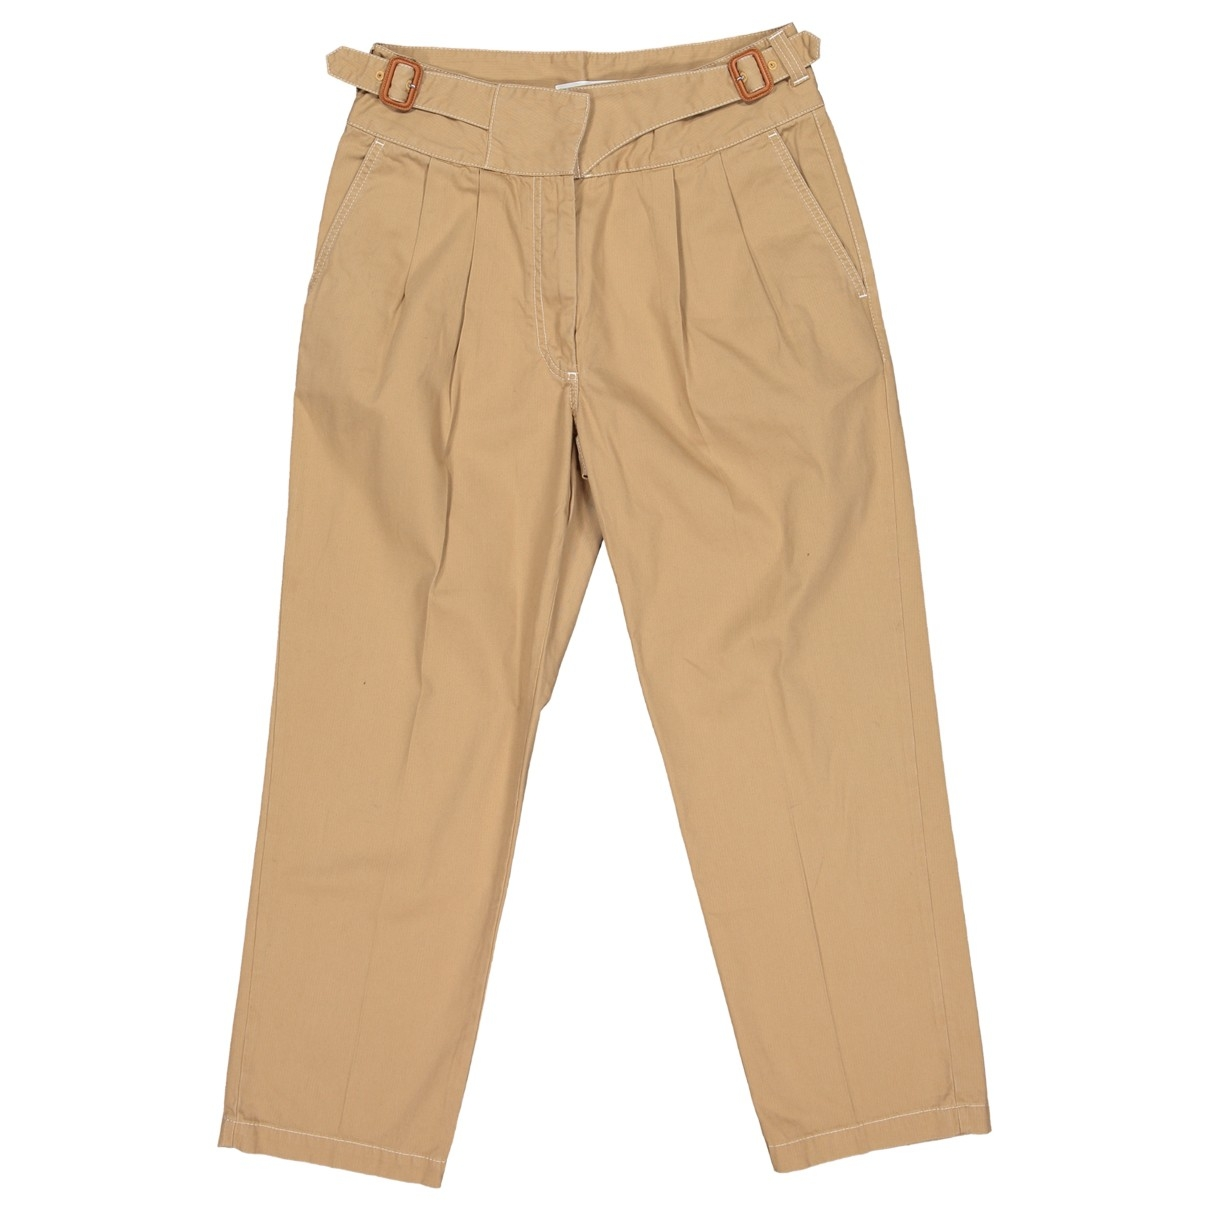 Loewe \N Camel Cotton Trousers for Women 40 IT